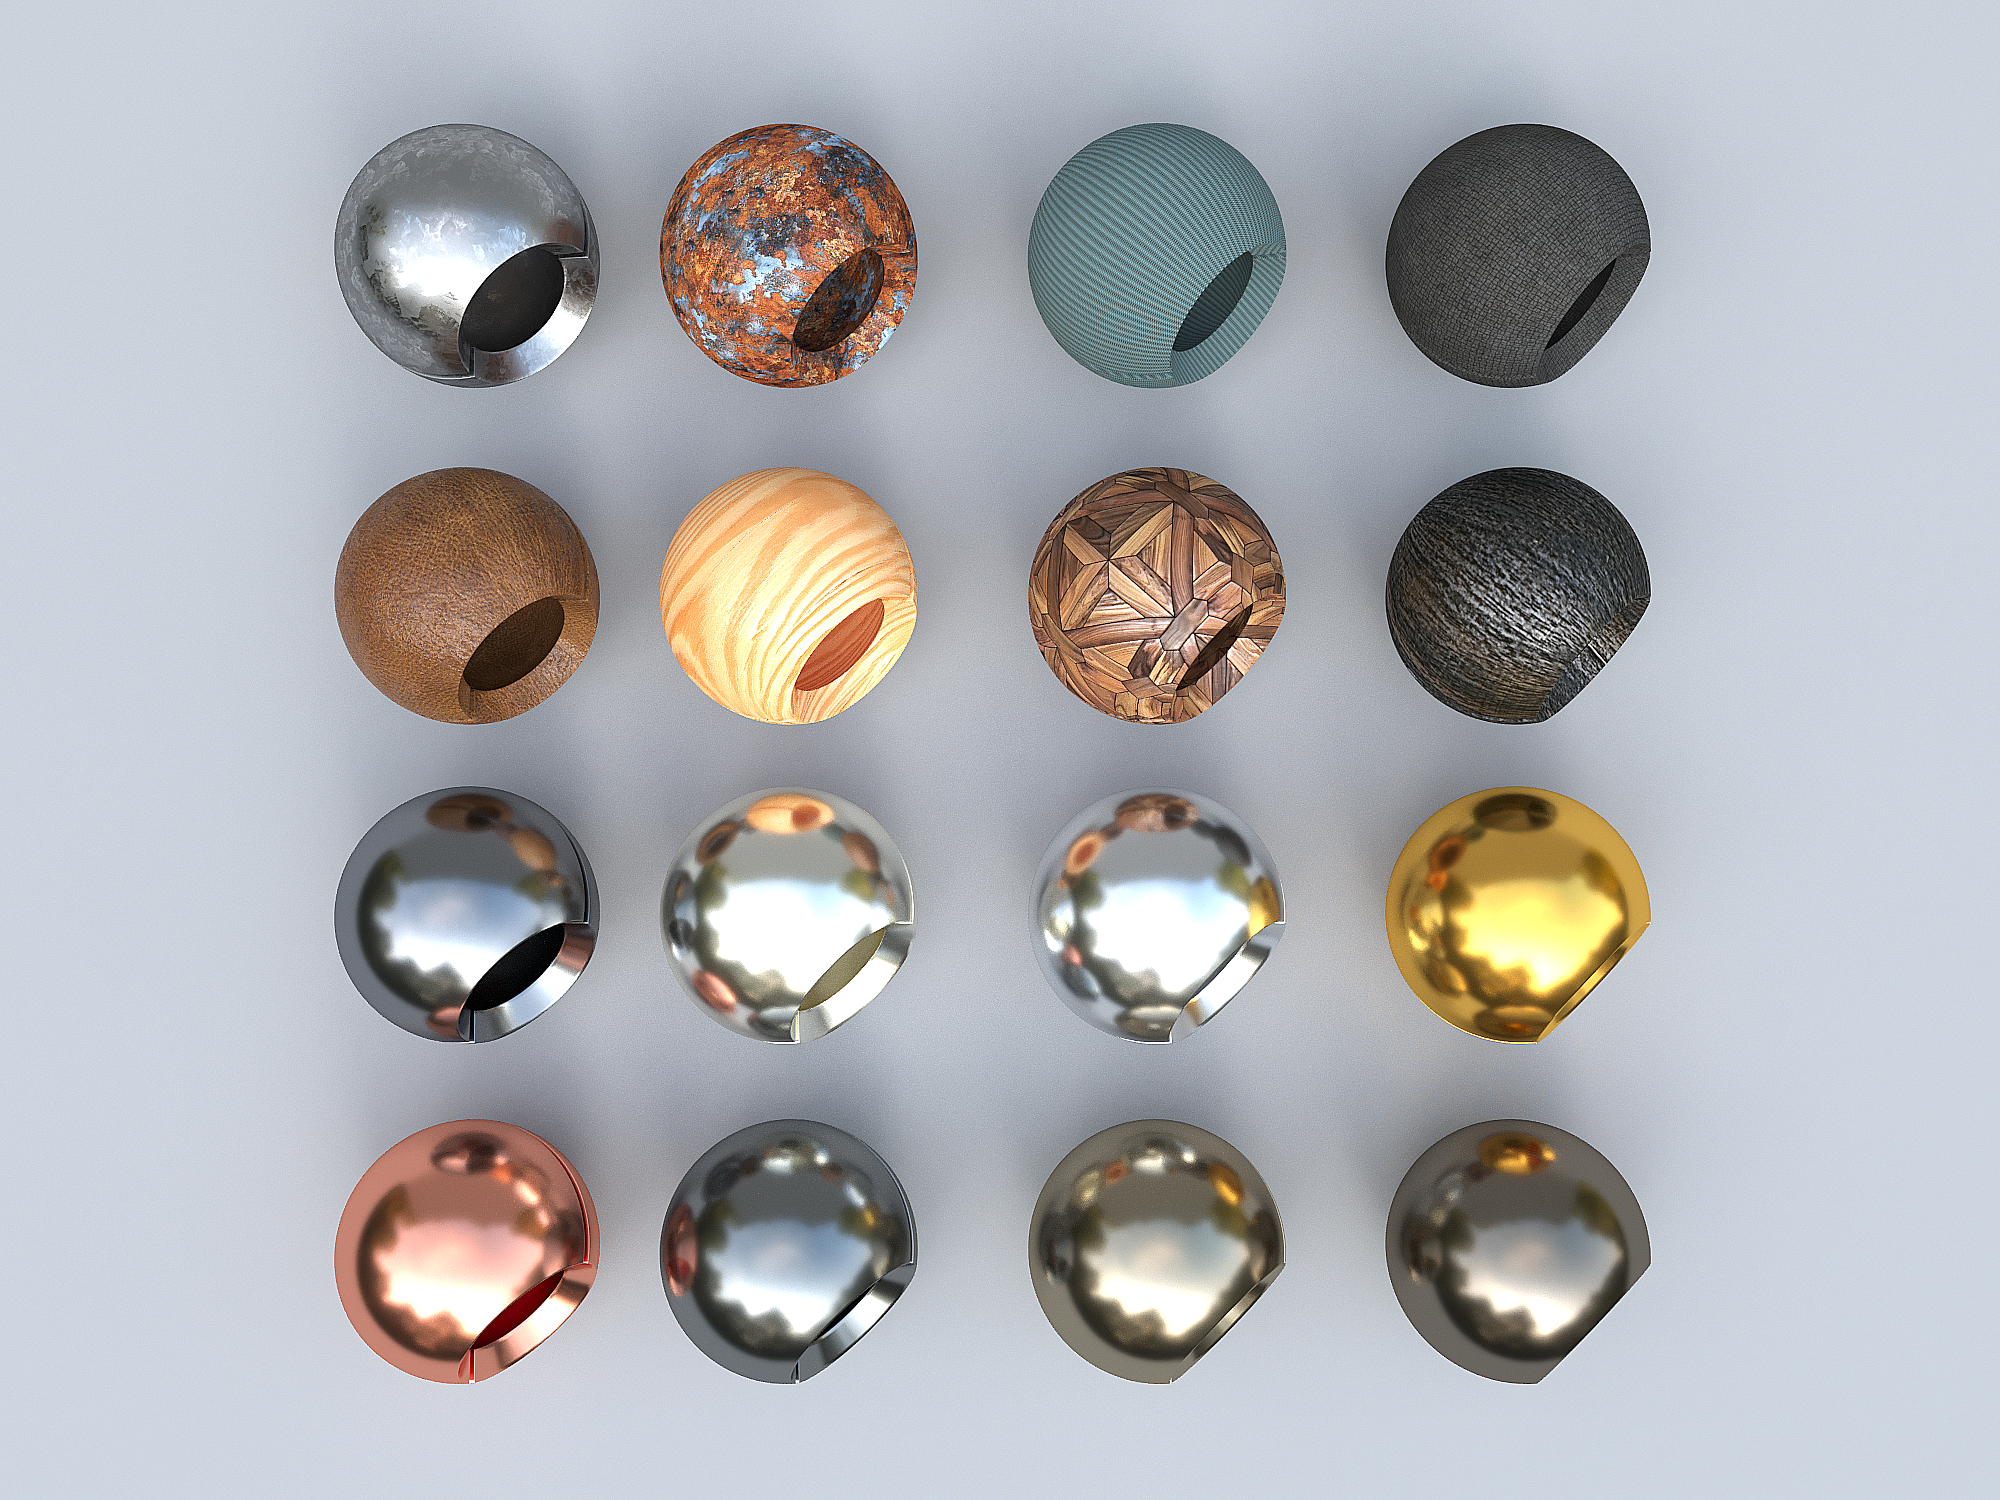 Corona Materials and Textures for Cinema 4D